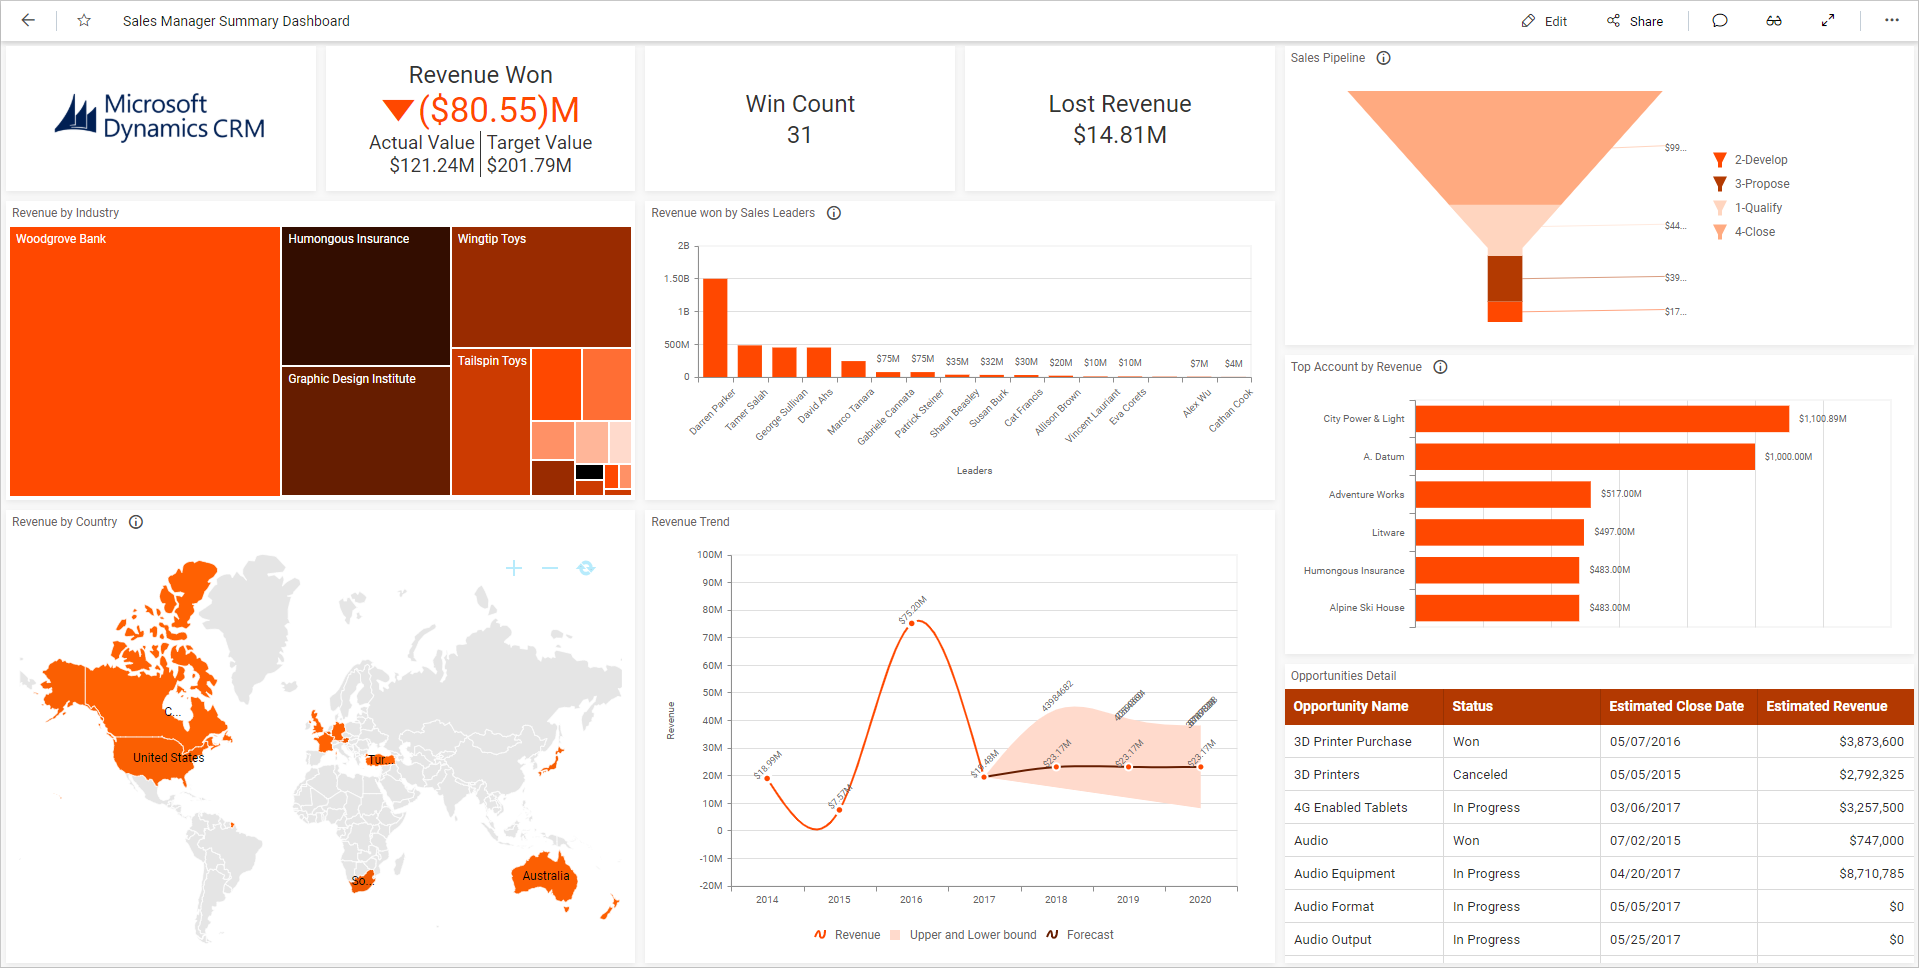 Sales Manager Summary Dashboard